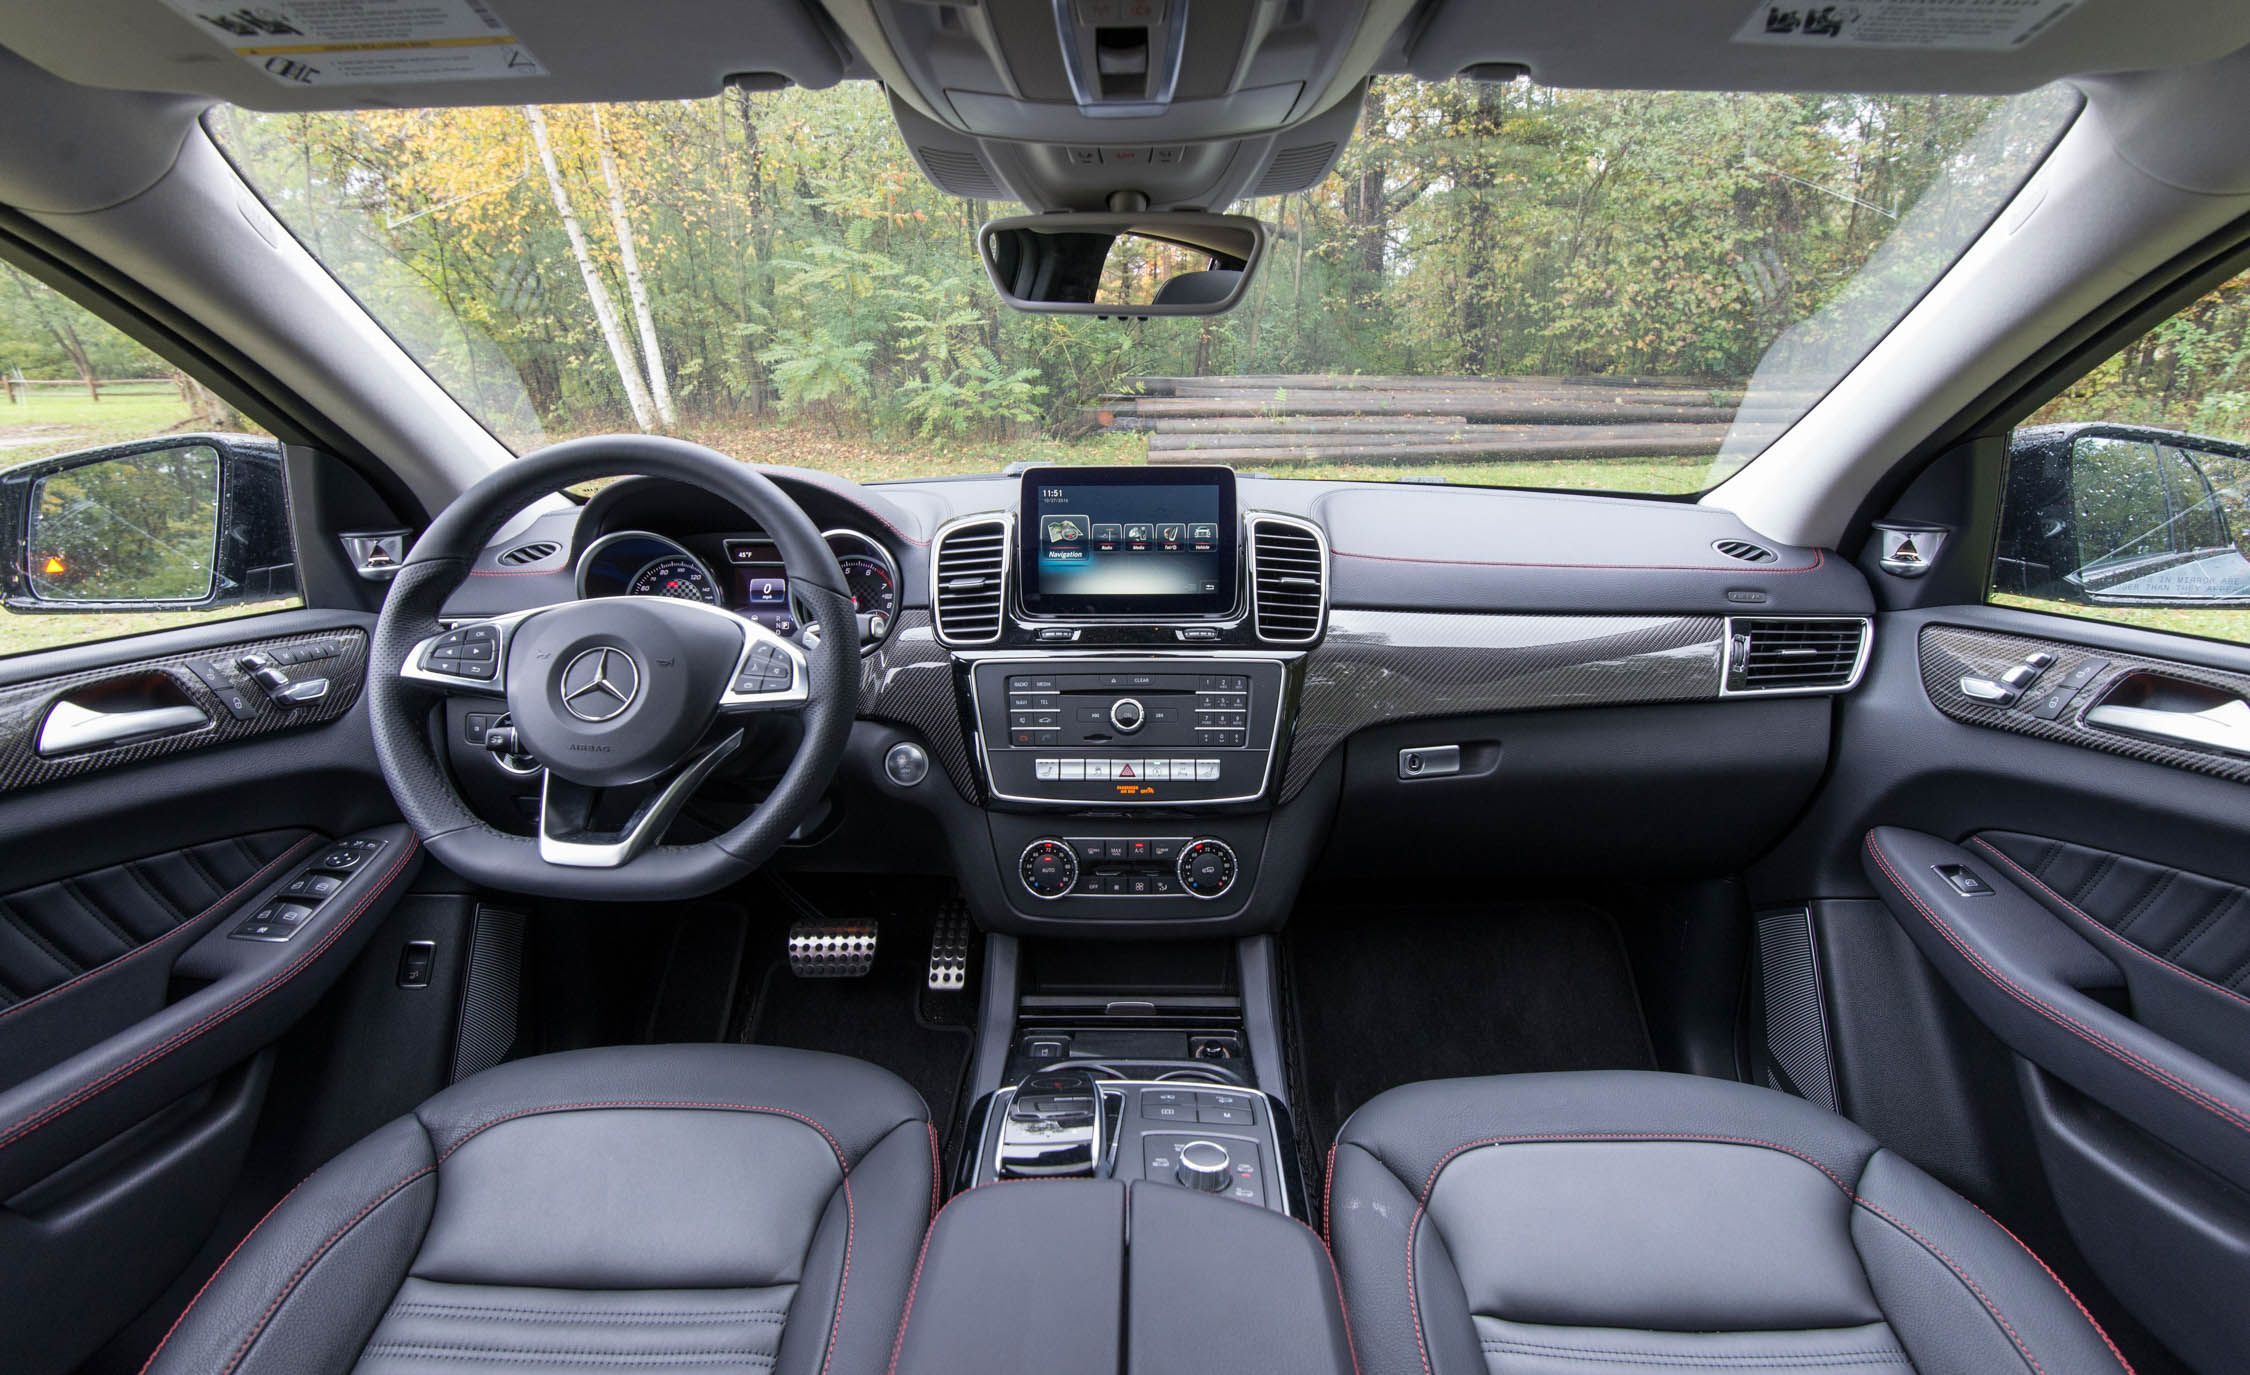 2018 Mercedes-AMG GLE43 / GLE43 Coupe Review – Interior and Passenger Space